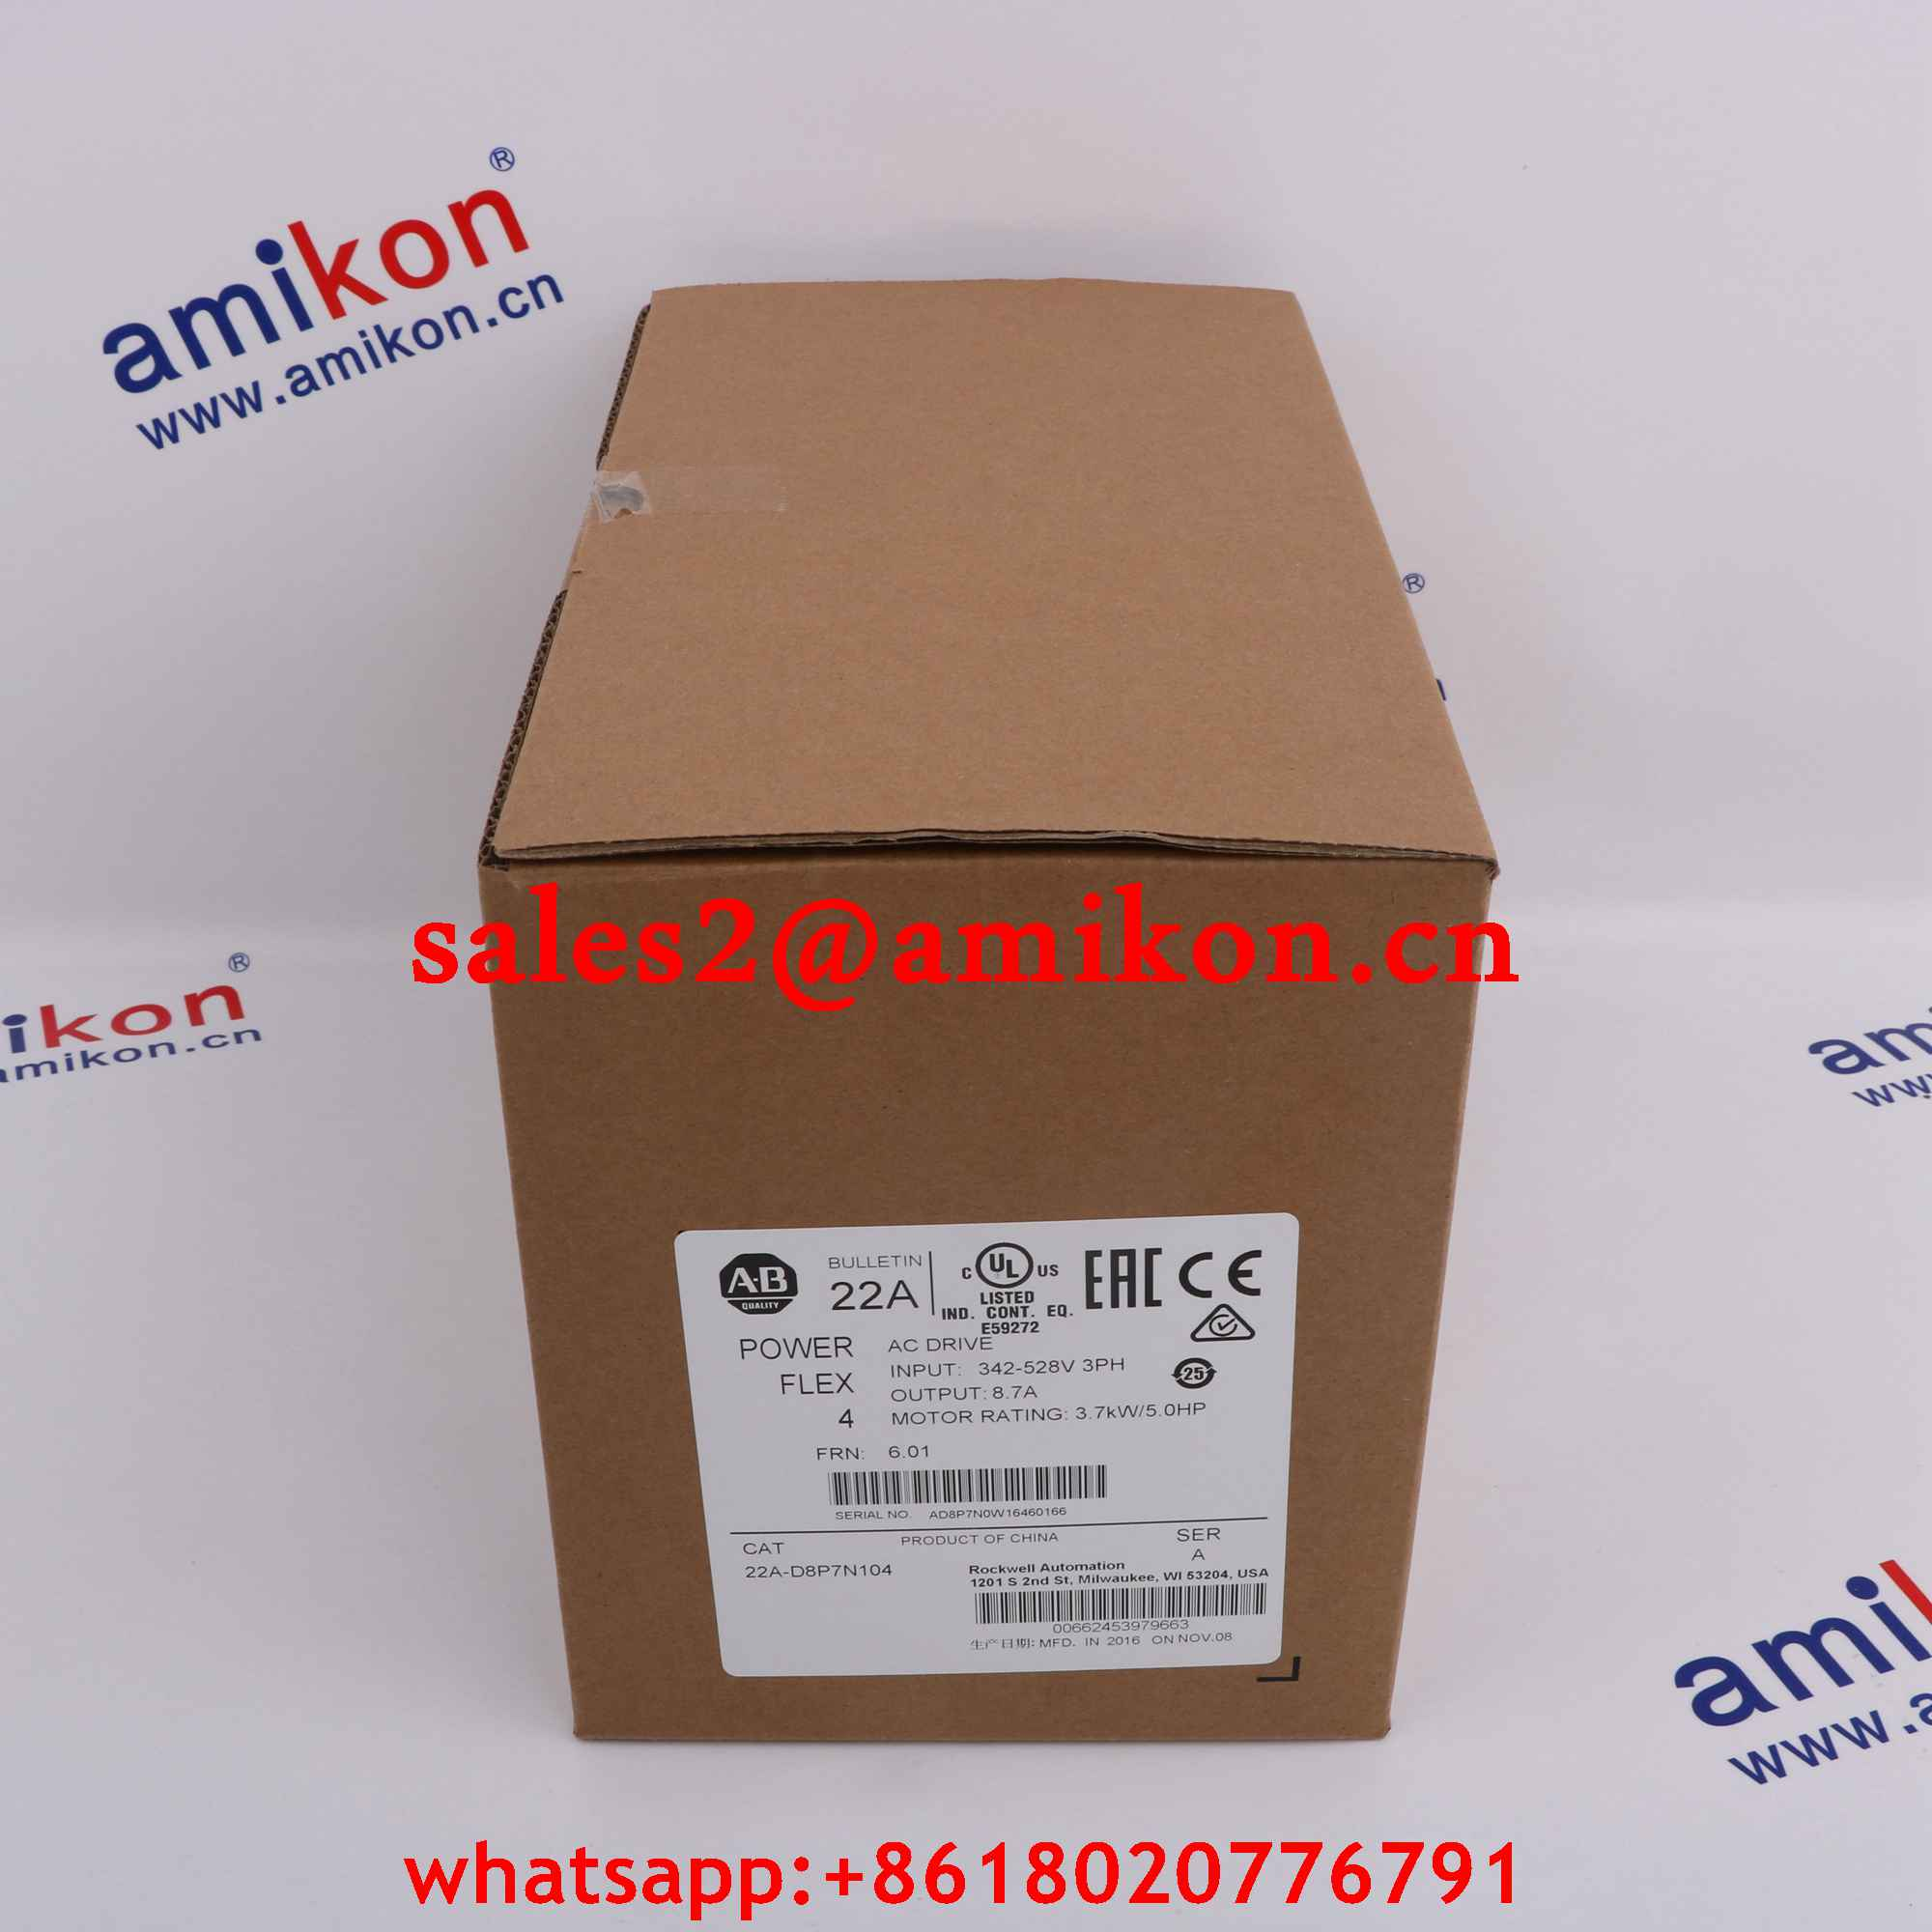 SIEMENS 6ES7412-5HK06-0AB0 NEW IN STOCK DISOUNT SALE